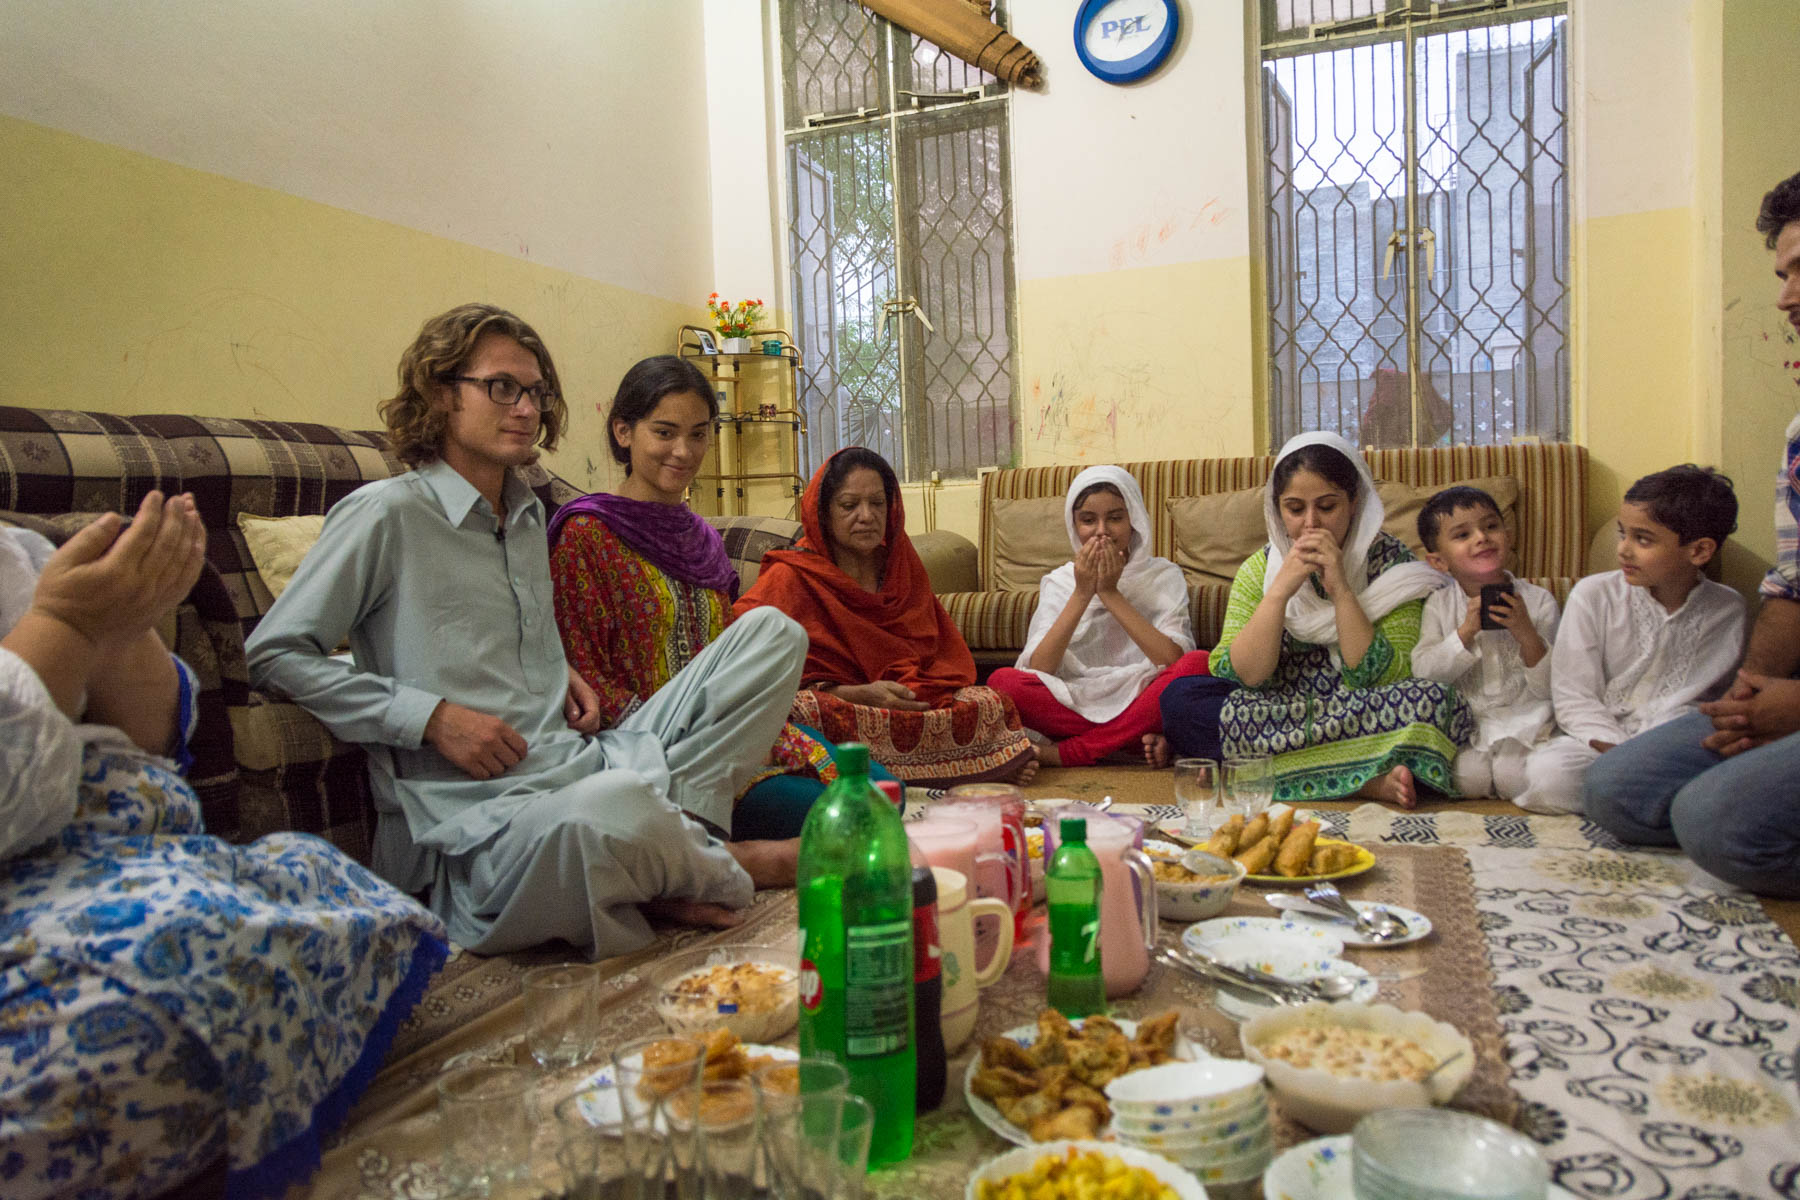 Travel in Pakistan during Ramadan - Having iftar with a family in Lahore - Lost With Purpose